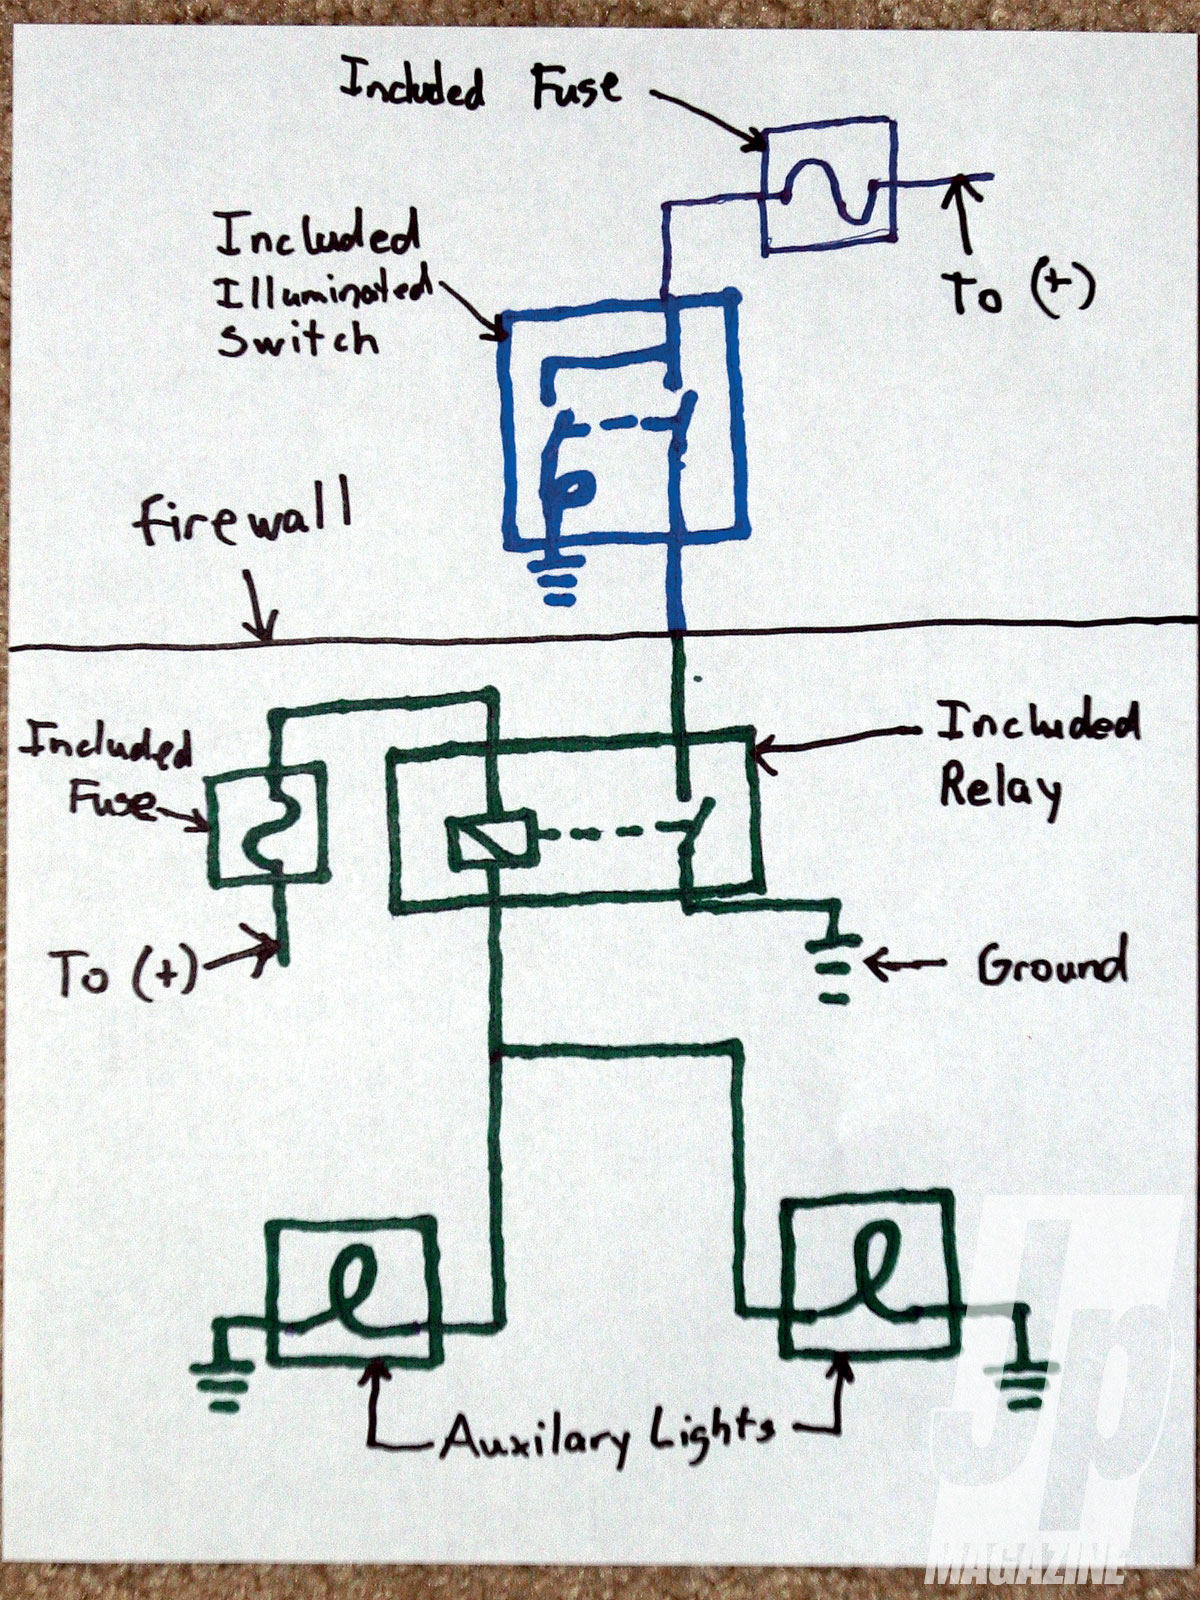 154 1011 november 2010 randys electrical corner eagle eye wiring diagram photo 03 [ 1200 x 1600 Pixel ]